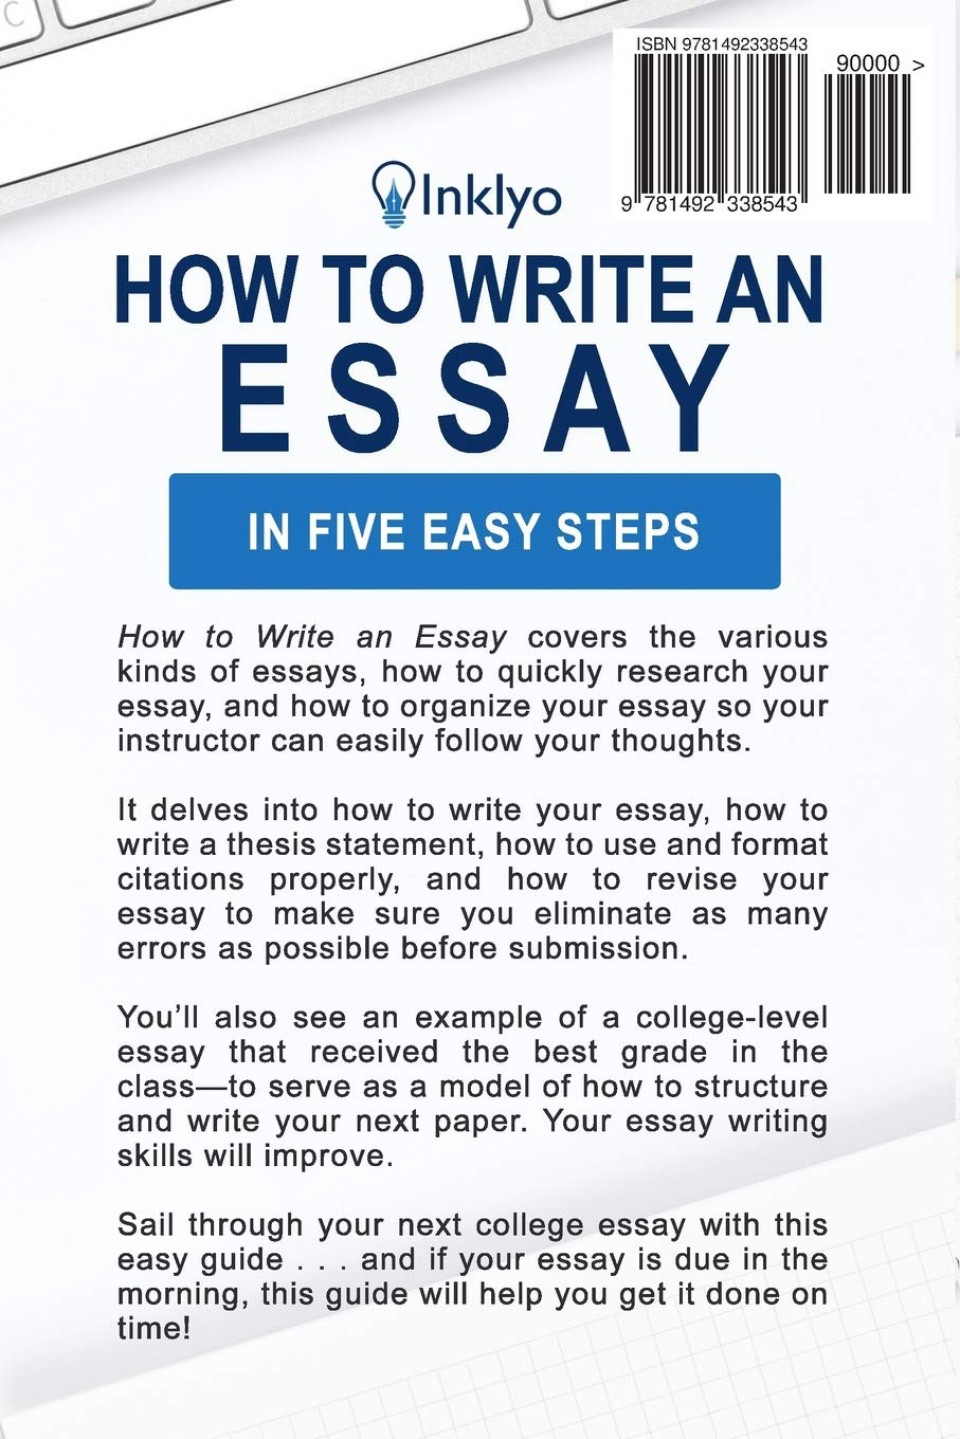 002 How To Write An Essay Example Shocking About Myself For A Scholarship Excellent Conclusion Pdf 960